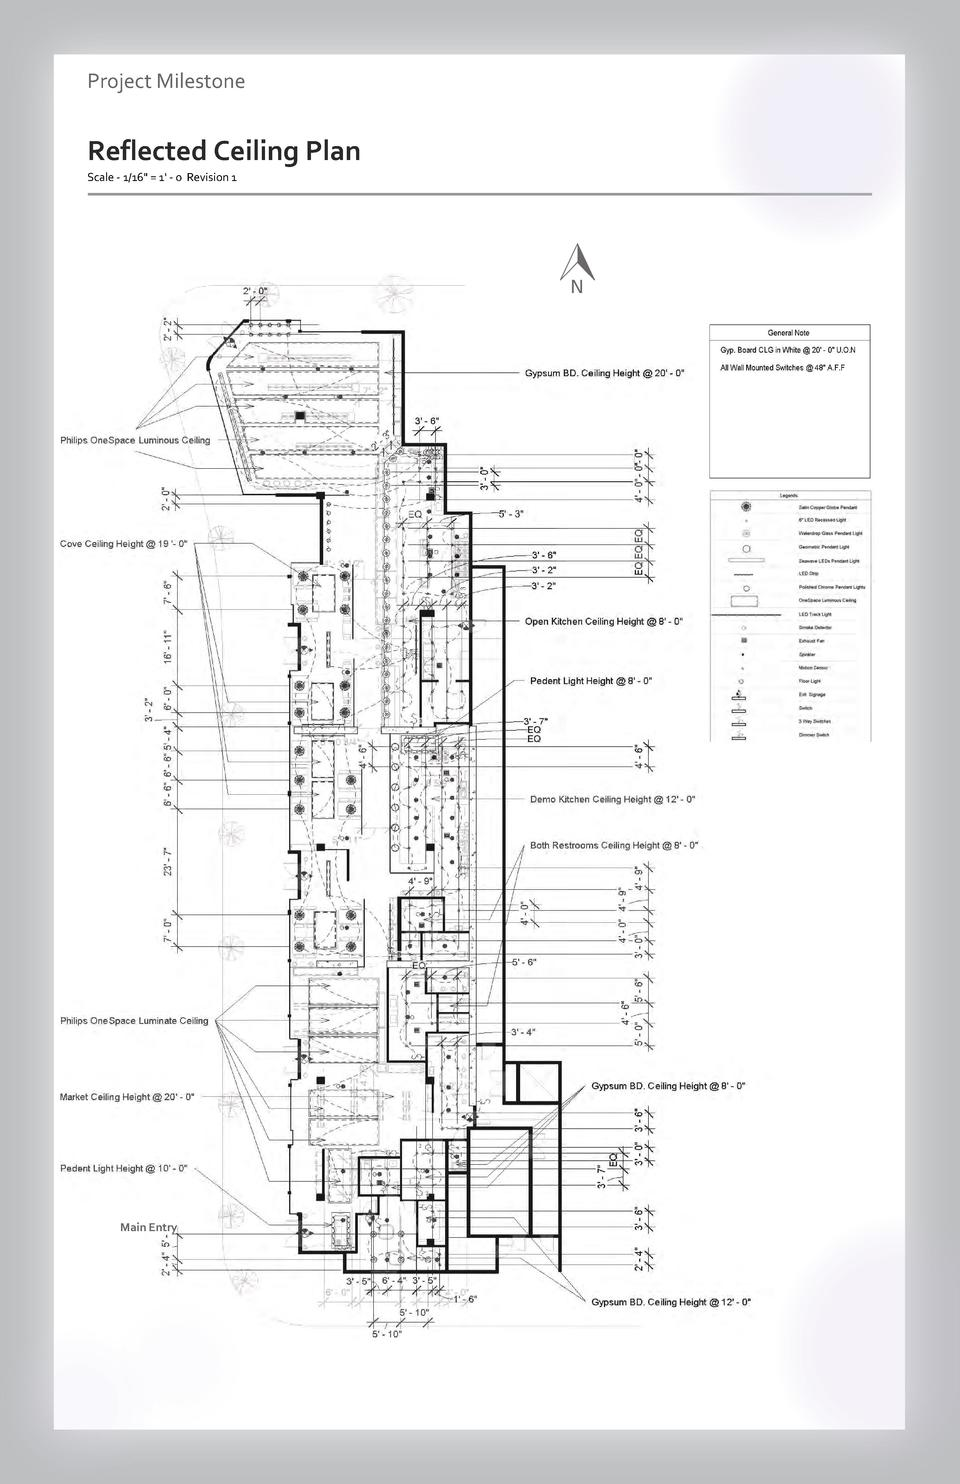 Case study Project Milestone - Aesthetics  Commercial Reflected Ceiling SpacePlan Wayfinding Westfield Scale - 1 16  Valle...